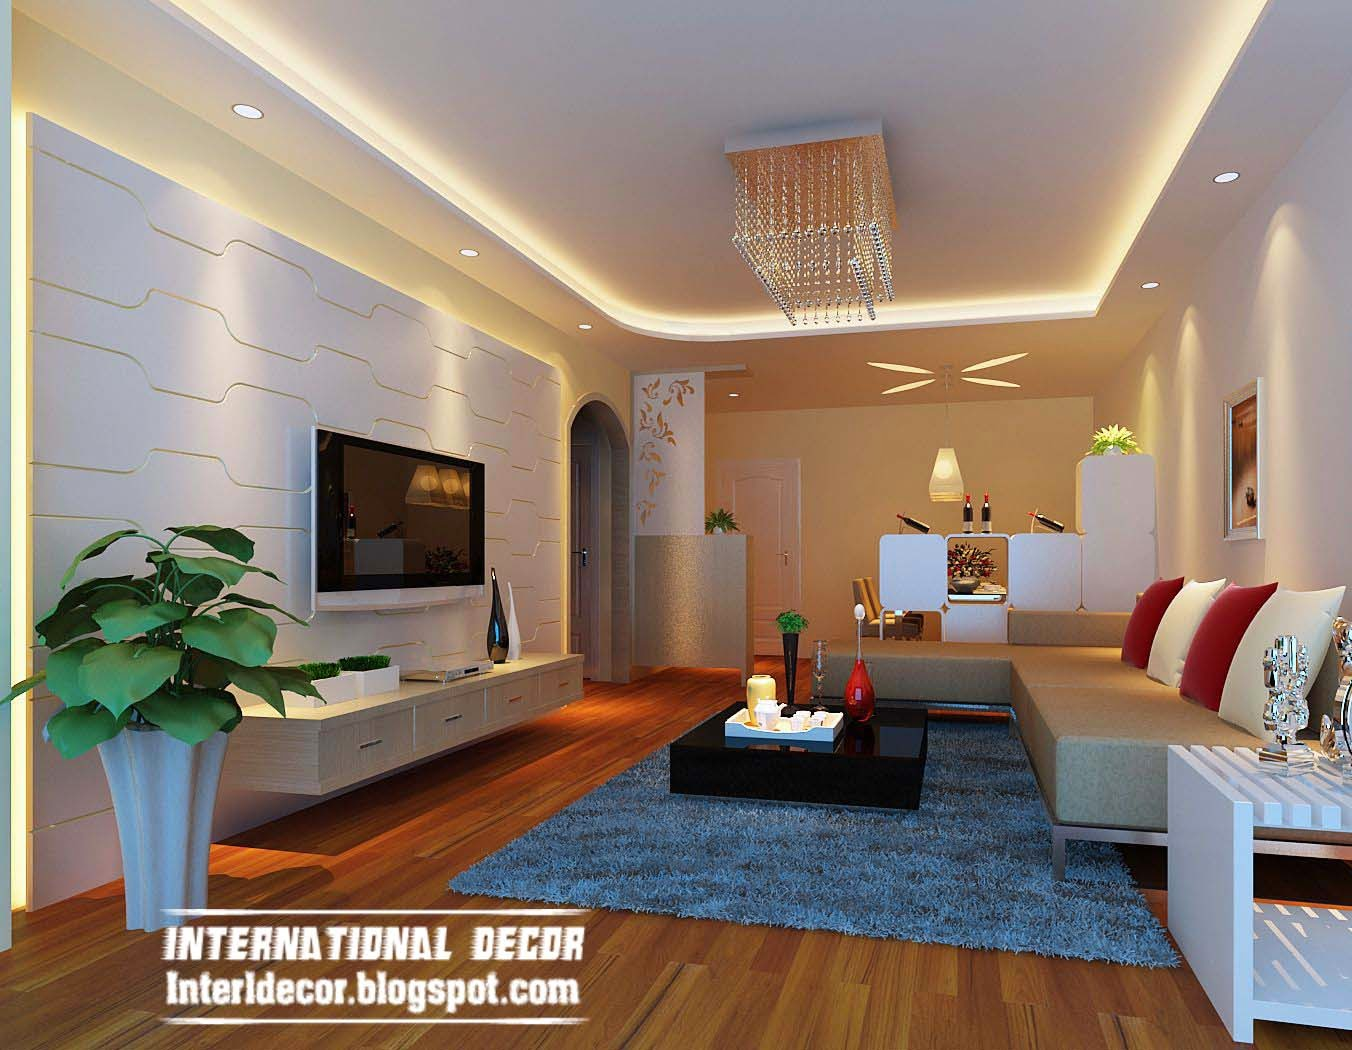 Top 10 suspended ceiling tiles designs and lighting for living room Overhead lighting living room